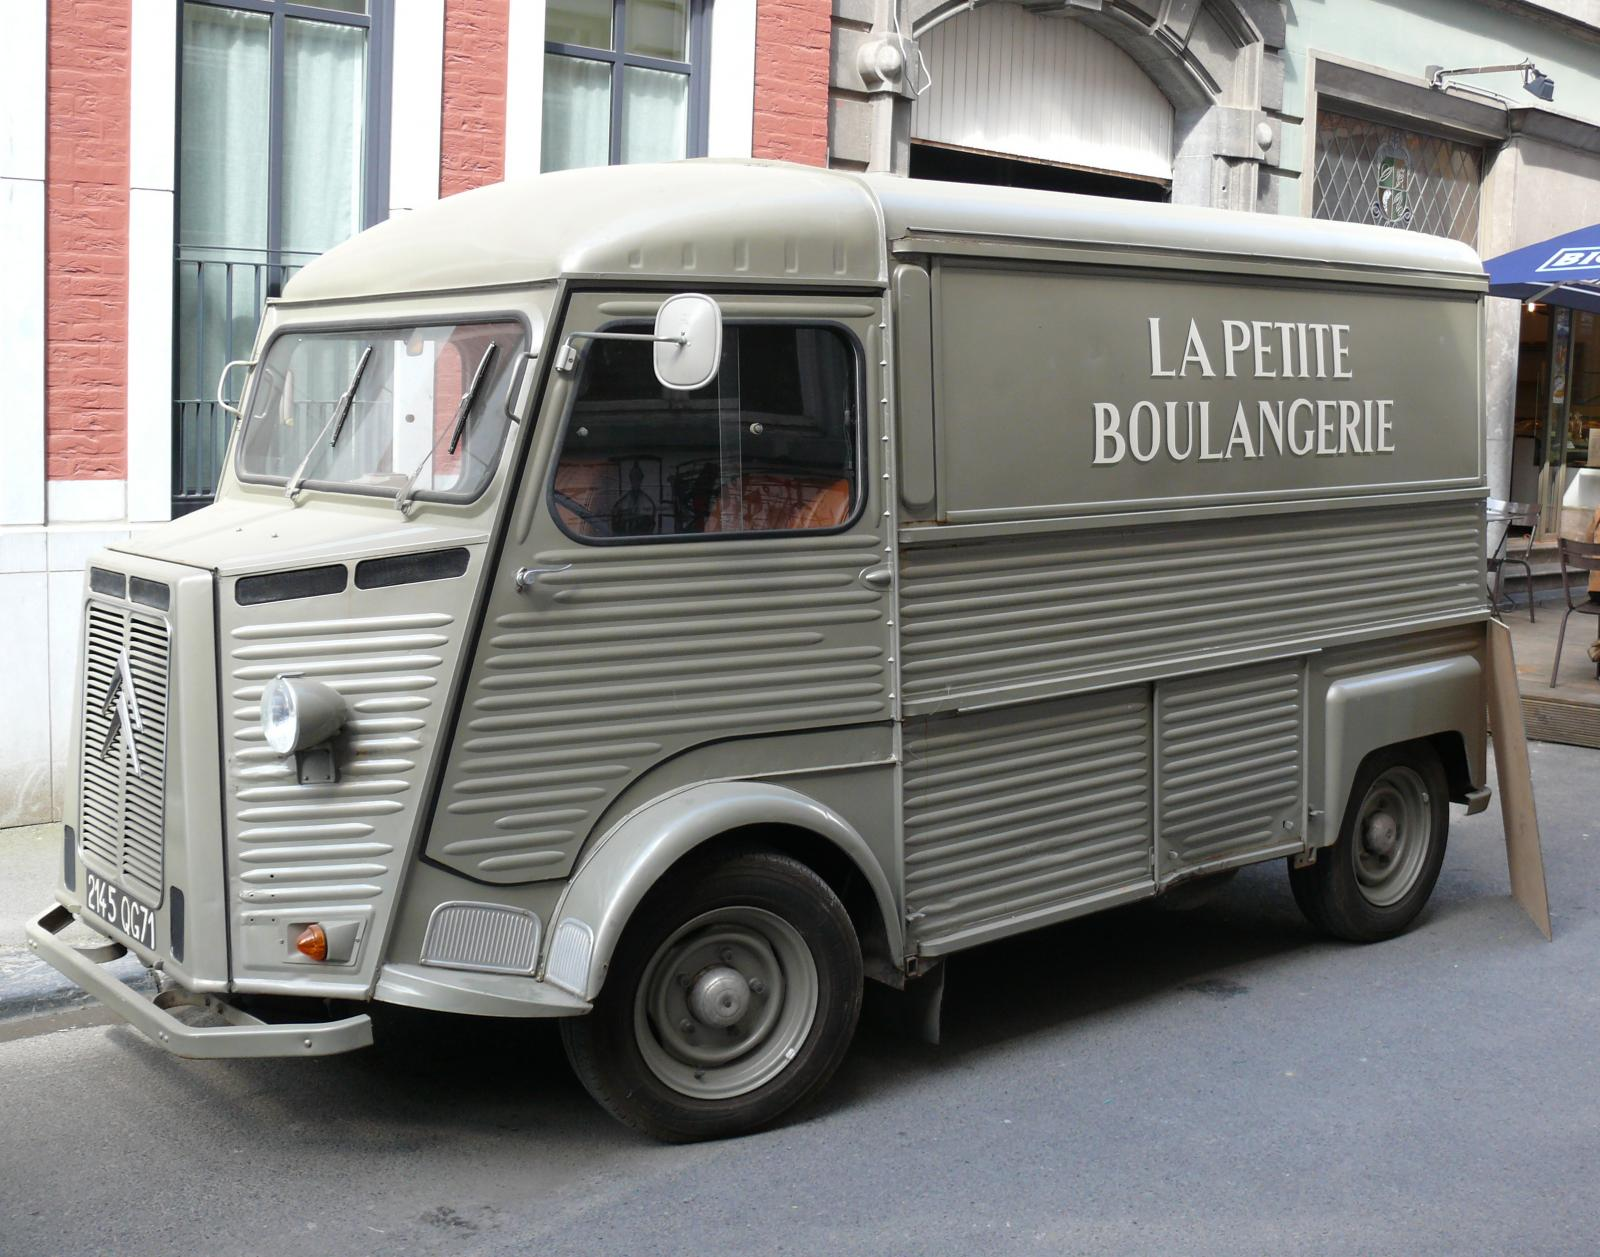 Type H La Petite Boulangerie (''The Little Bakery'')